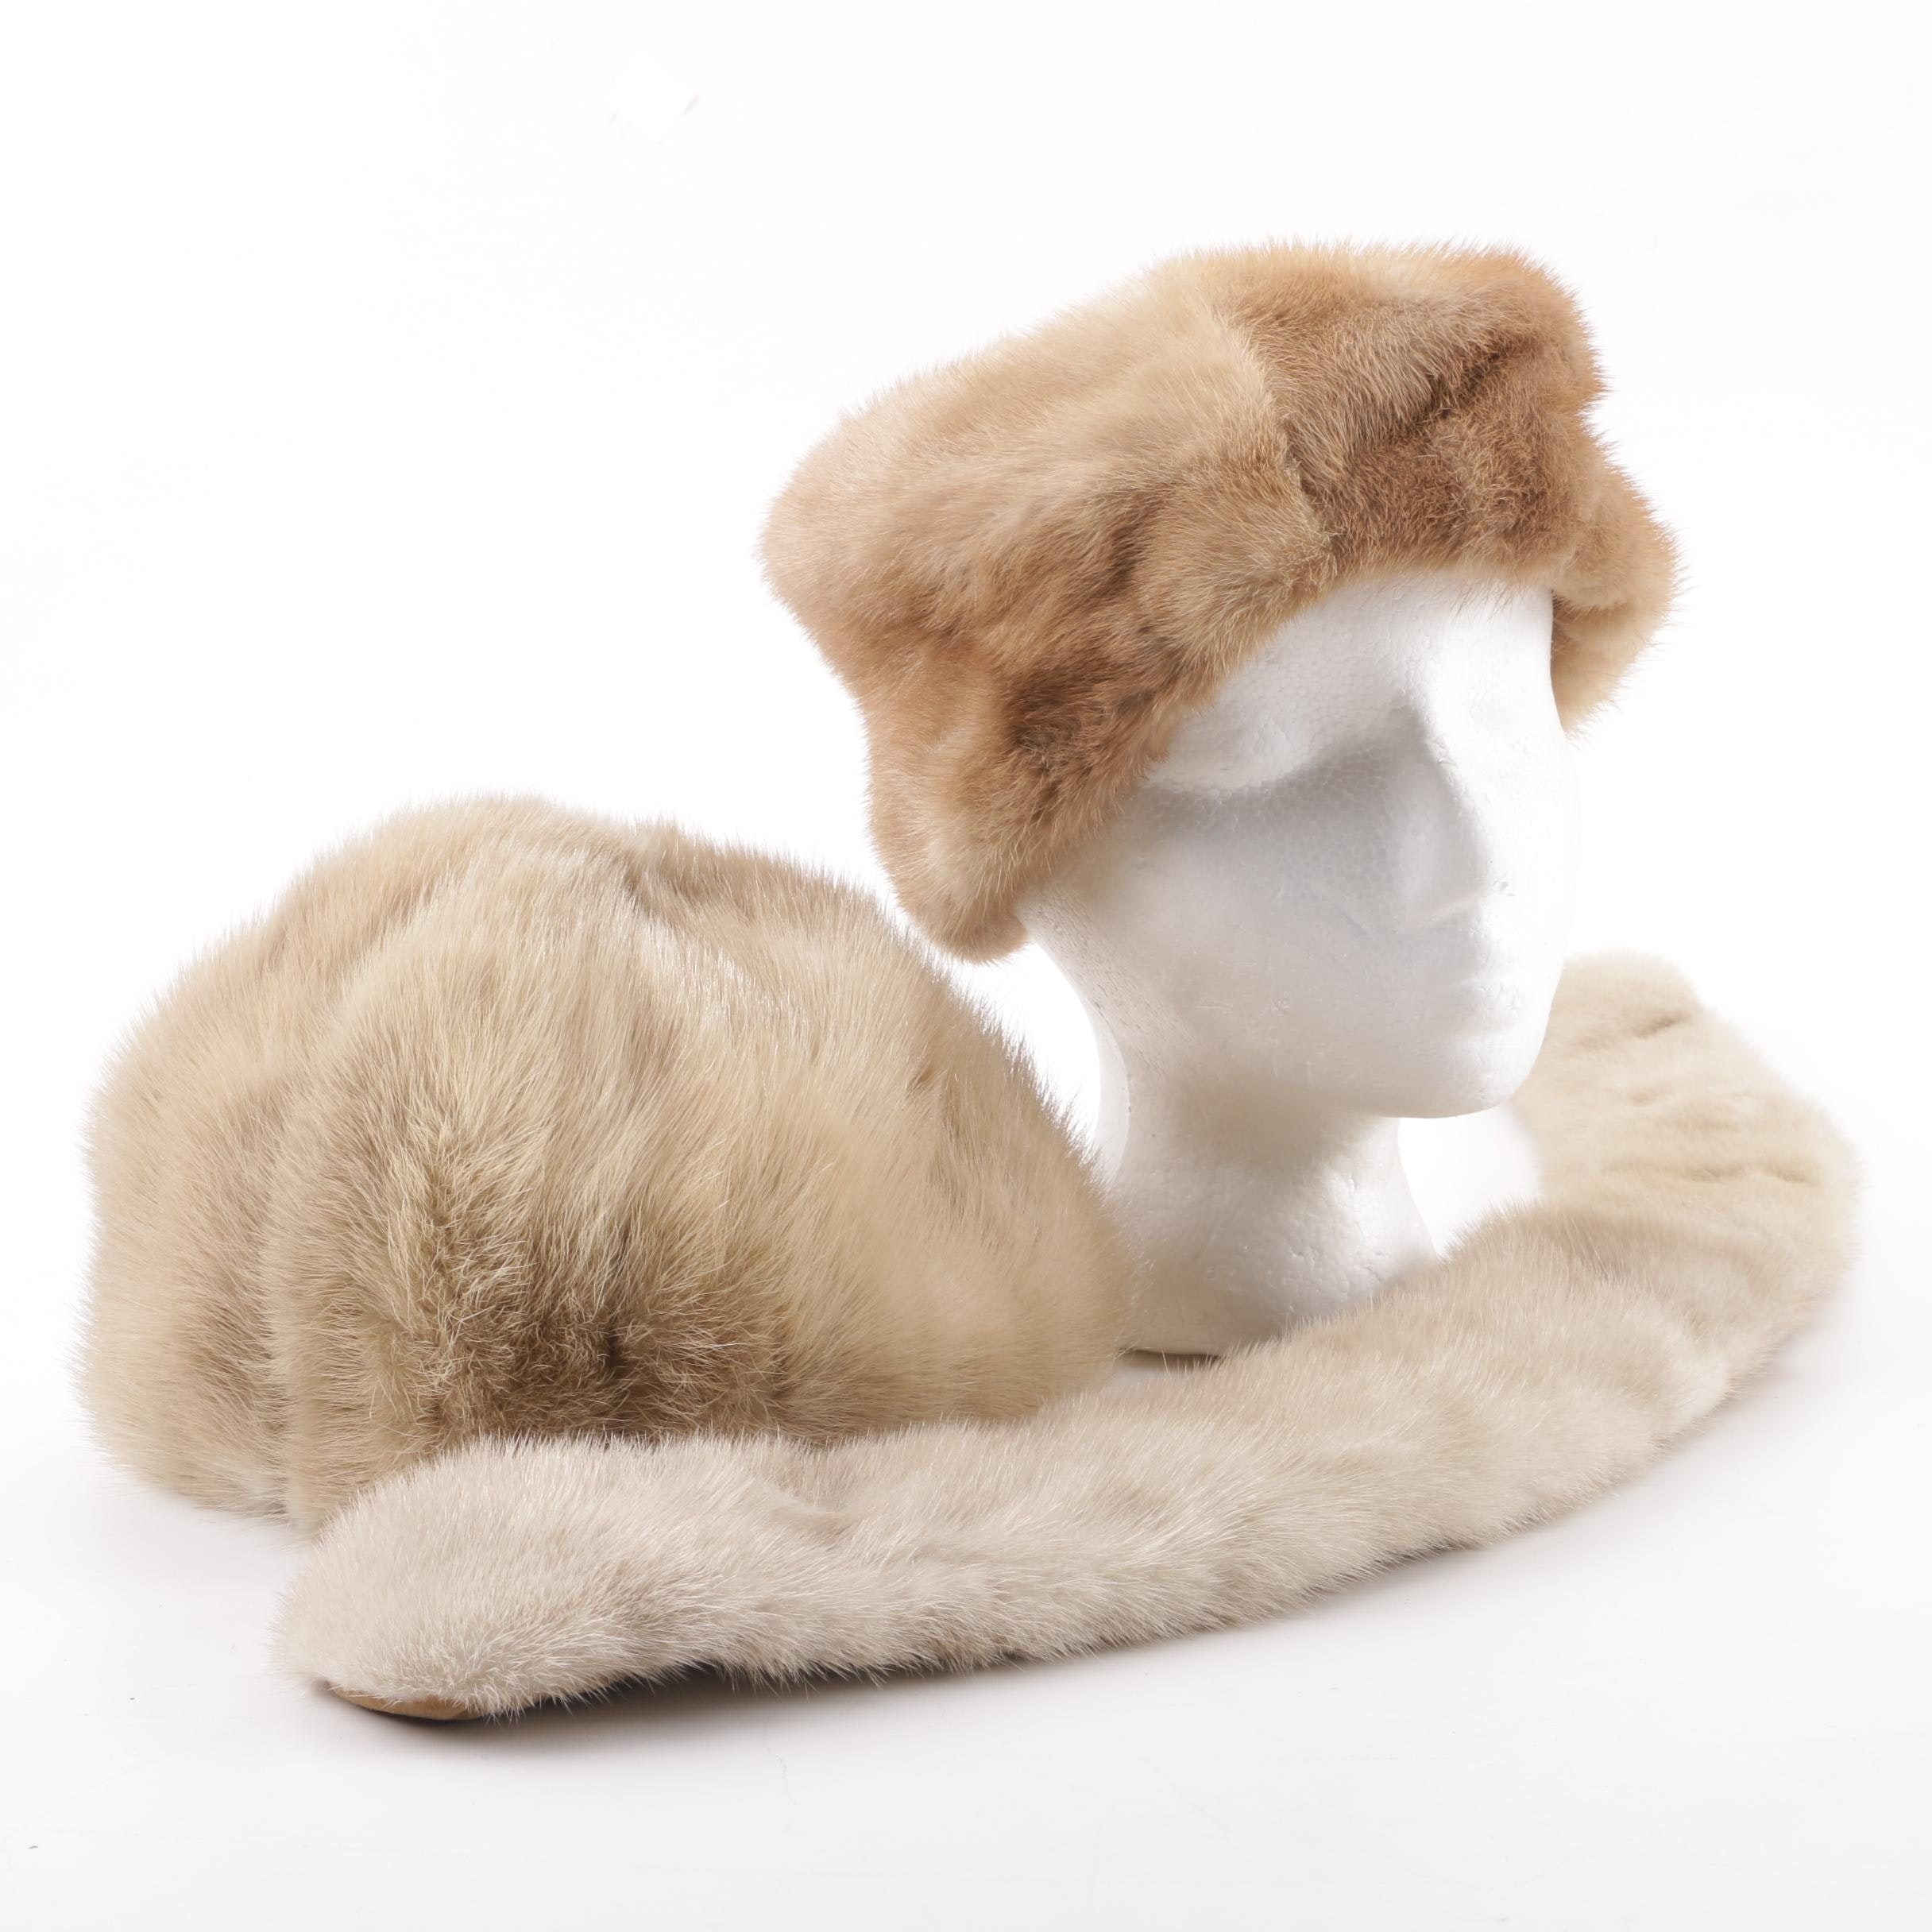 Women's Vintage Mink Fur Hats and Collar including René Michael